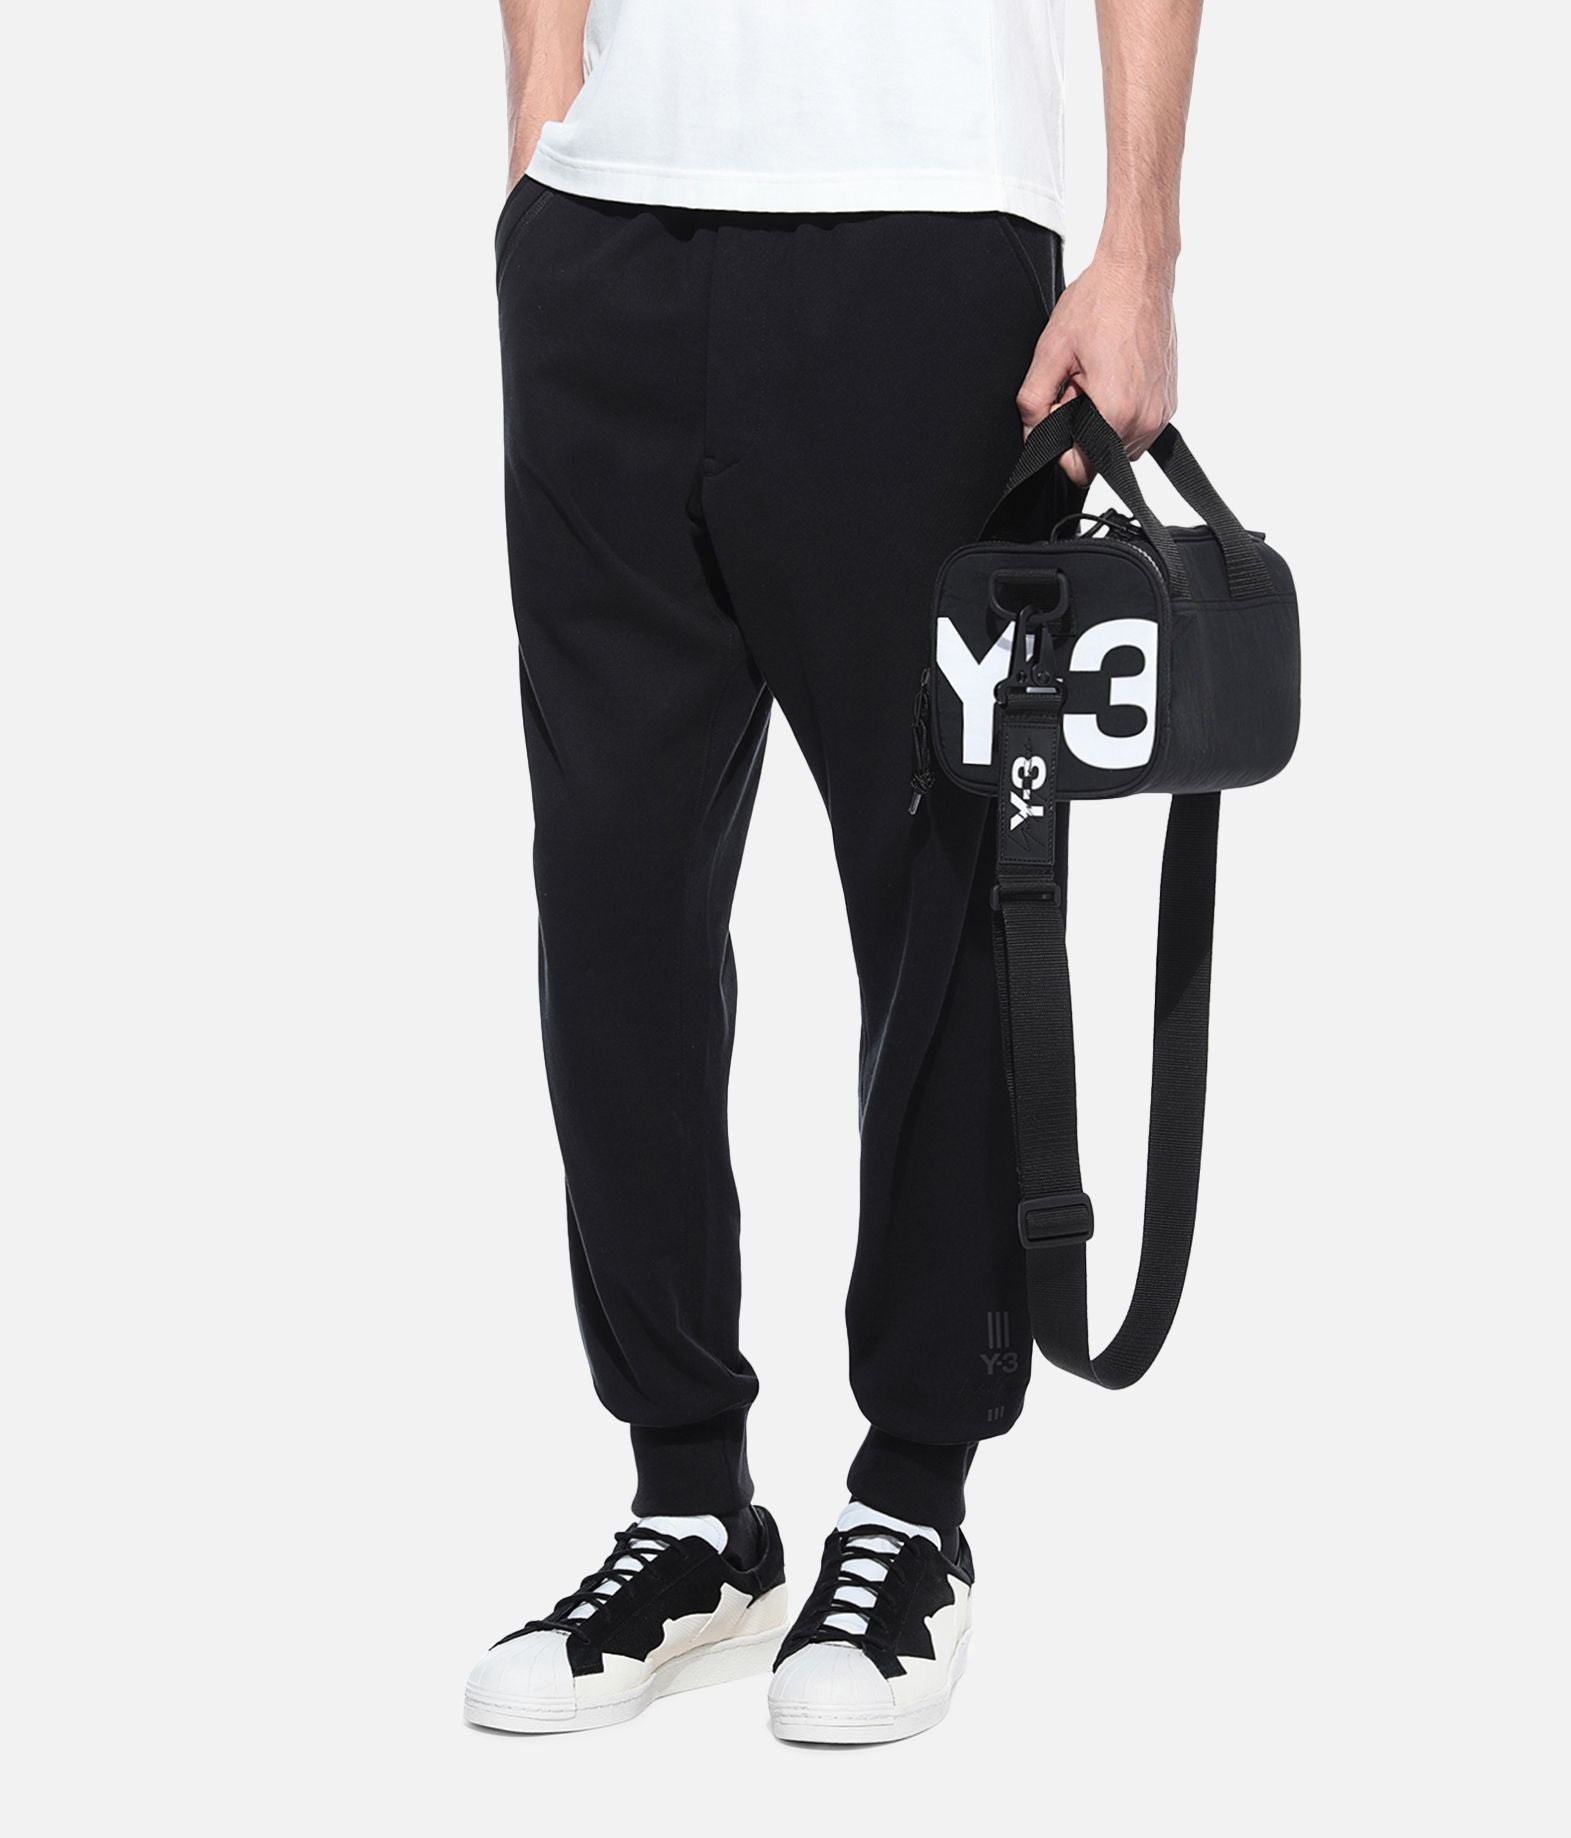 Y-3 MINI BAG - BLACK